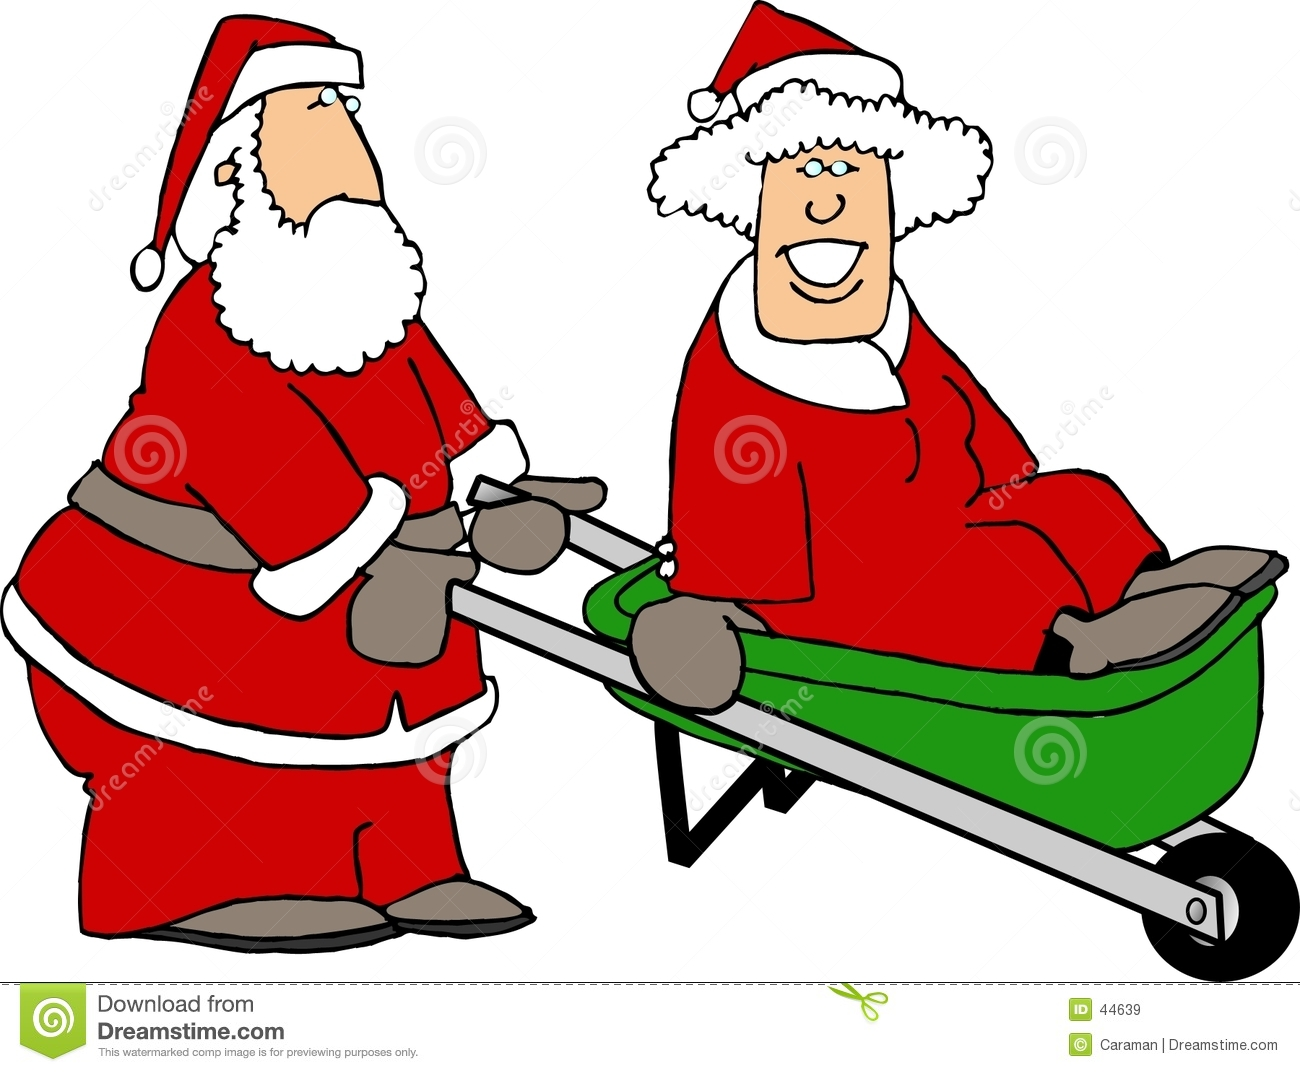 santa and mrs claus playing around stock illustration mrs. claus clipart images mrs claus black and white clipart